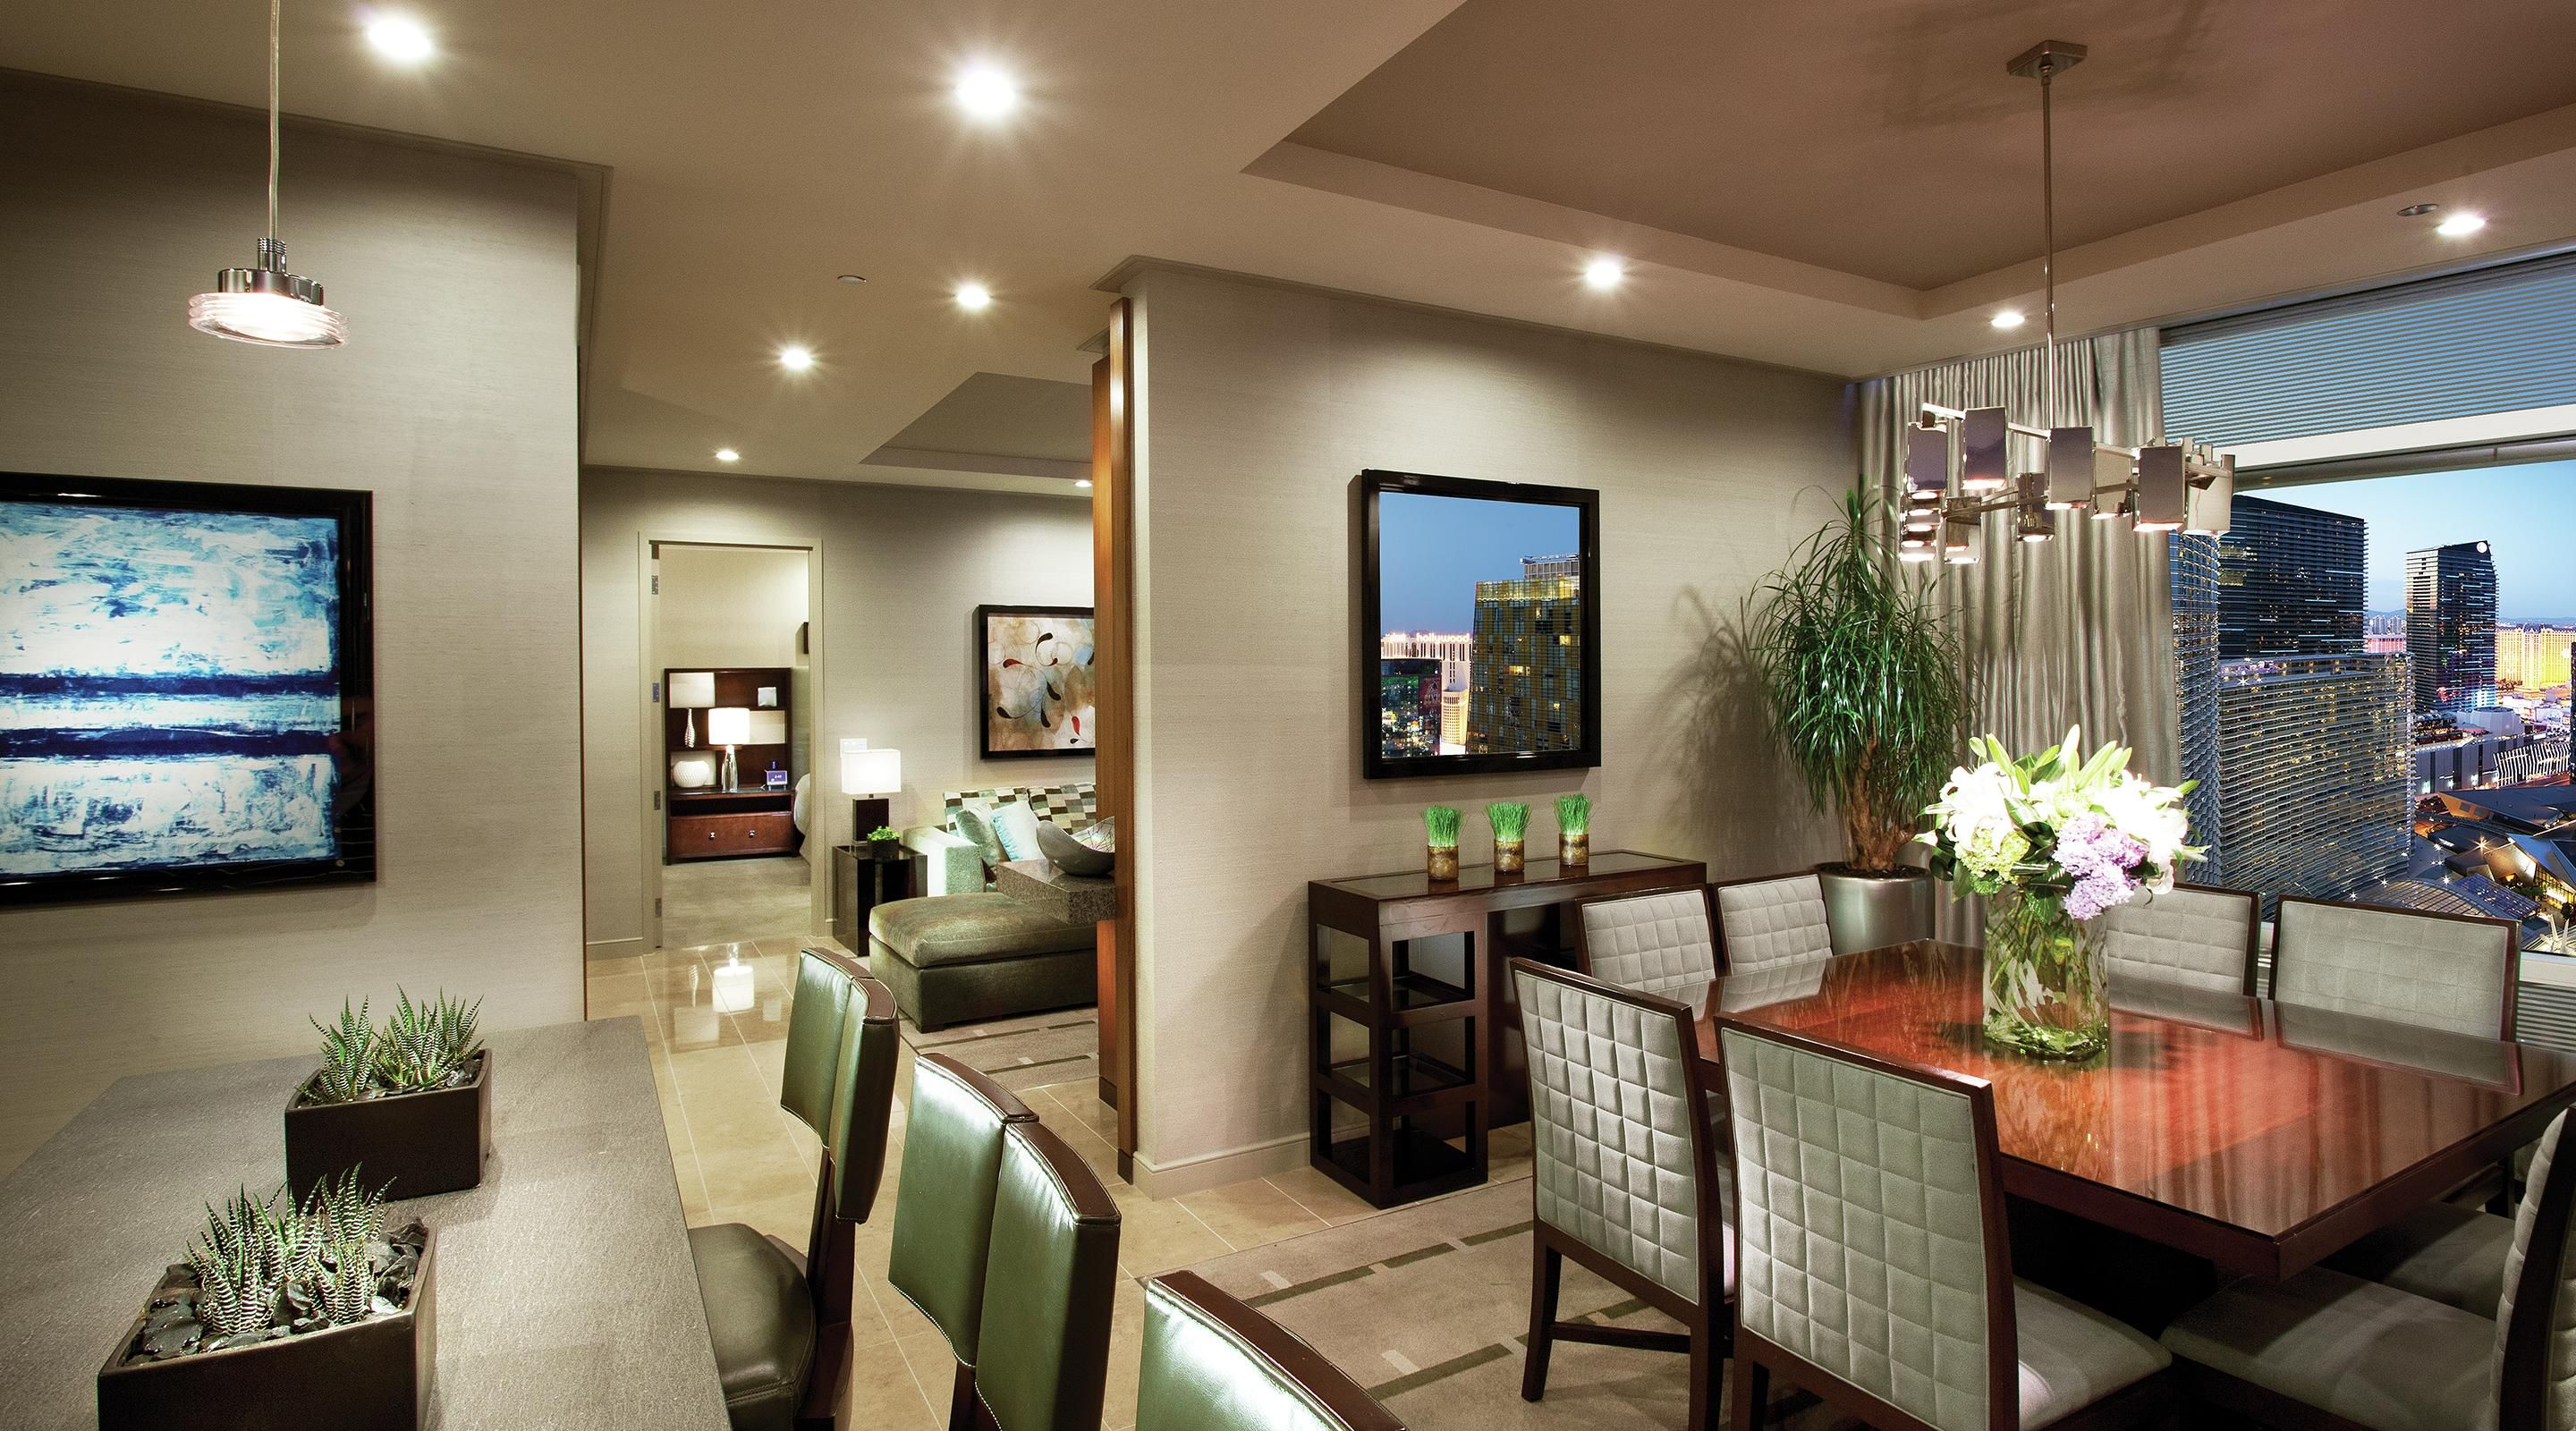 Two Bedroom Suites Las Vegas Hotels Latest Clean Ideas Hotel The Strip Style